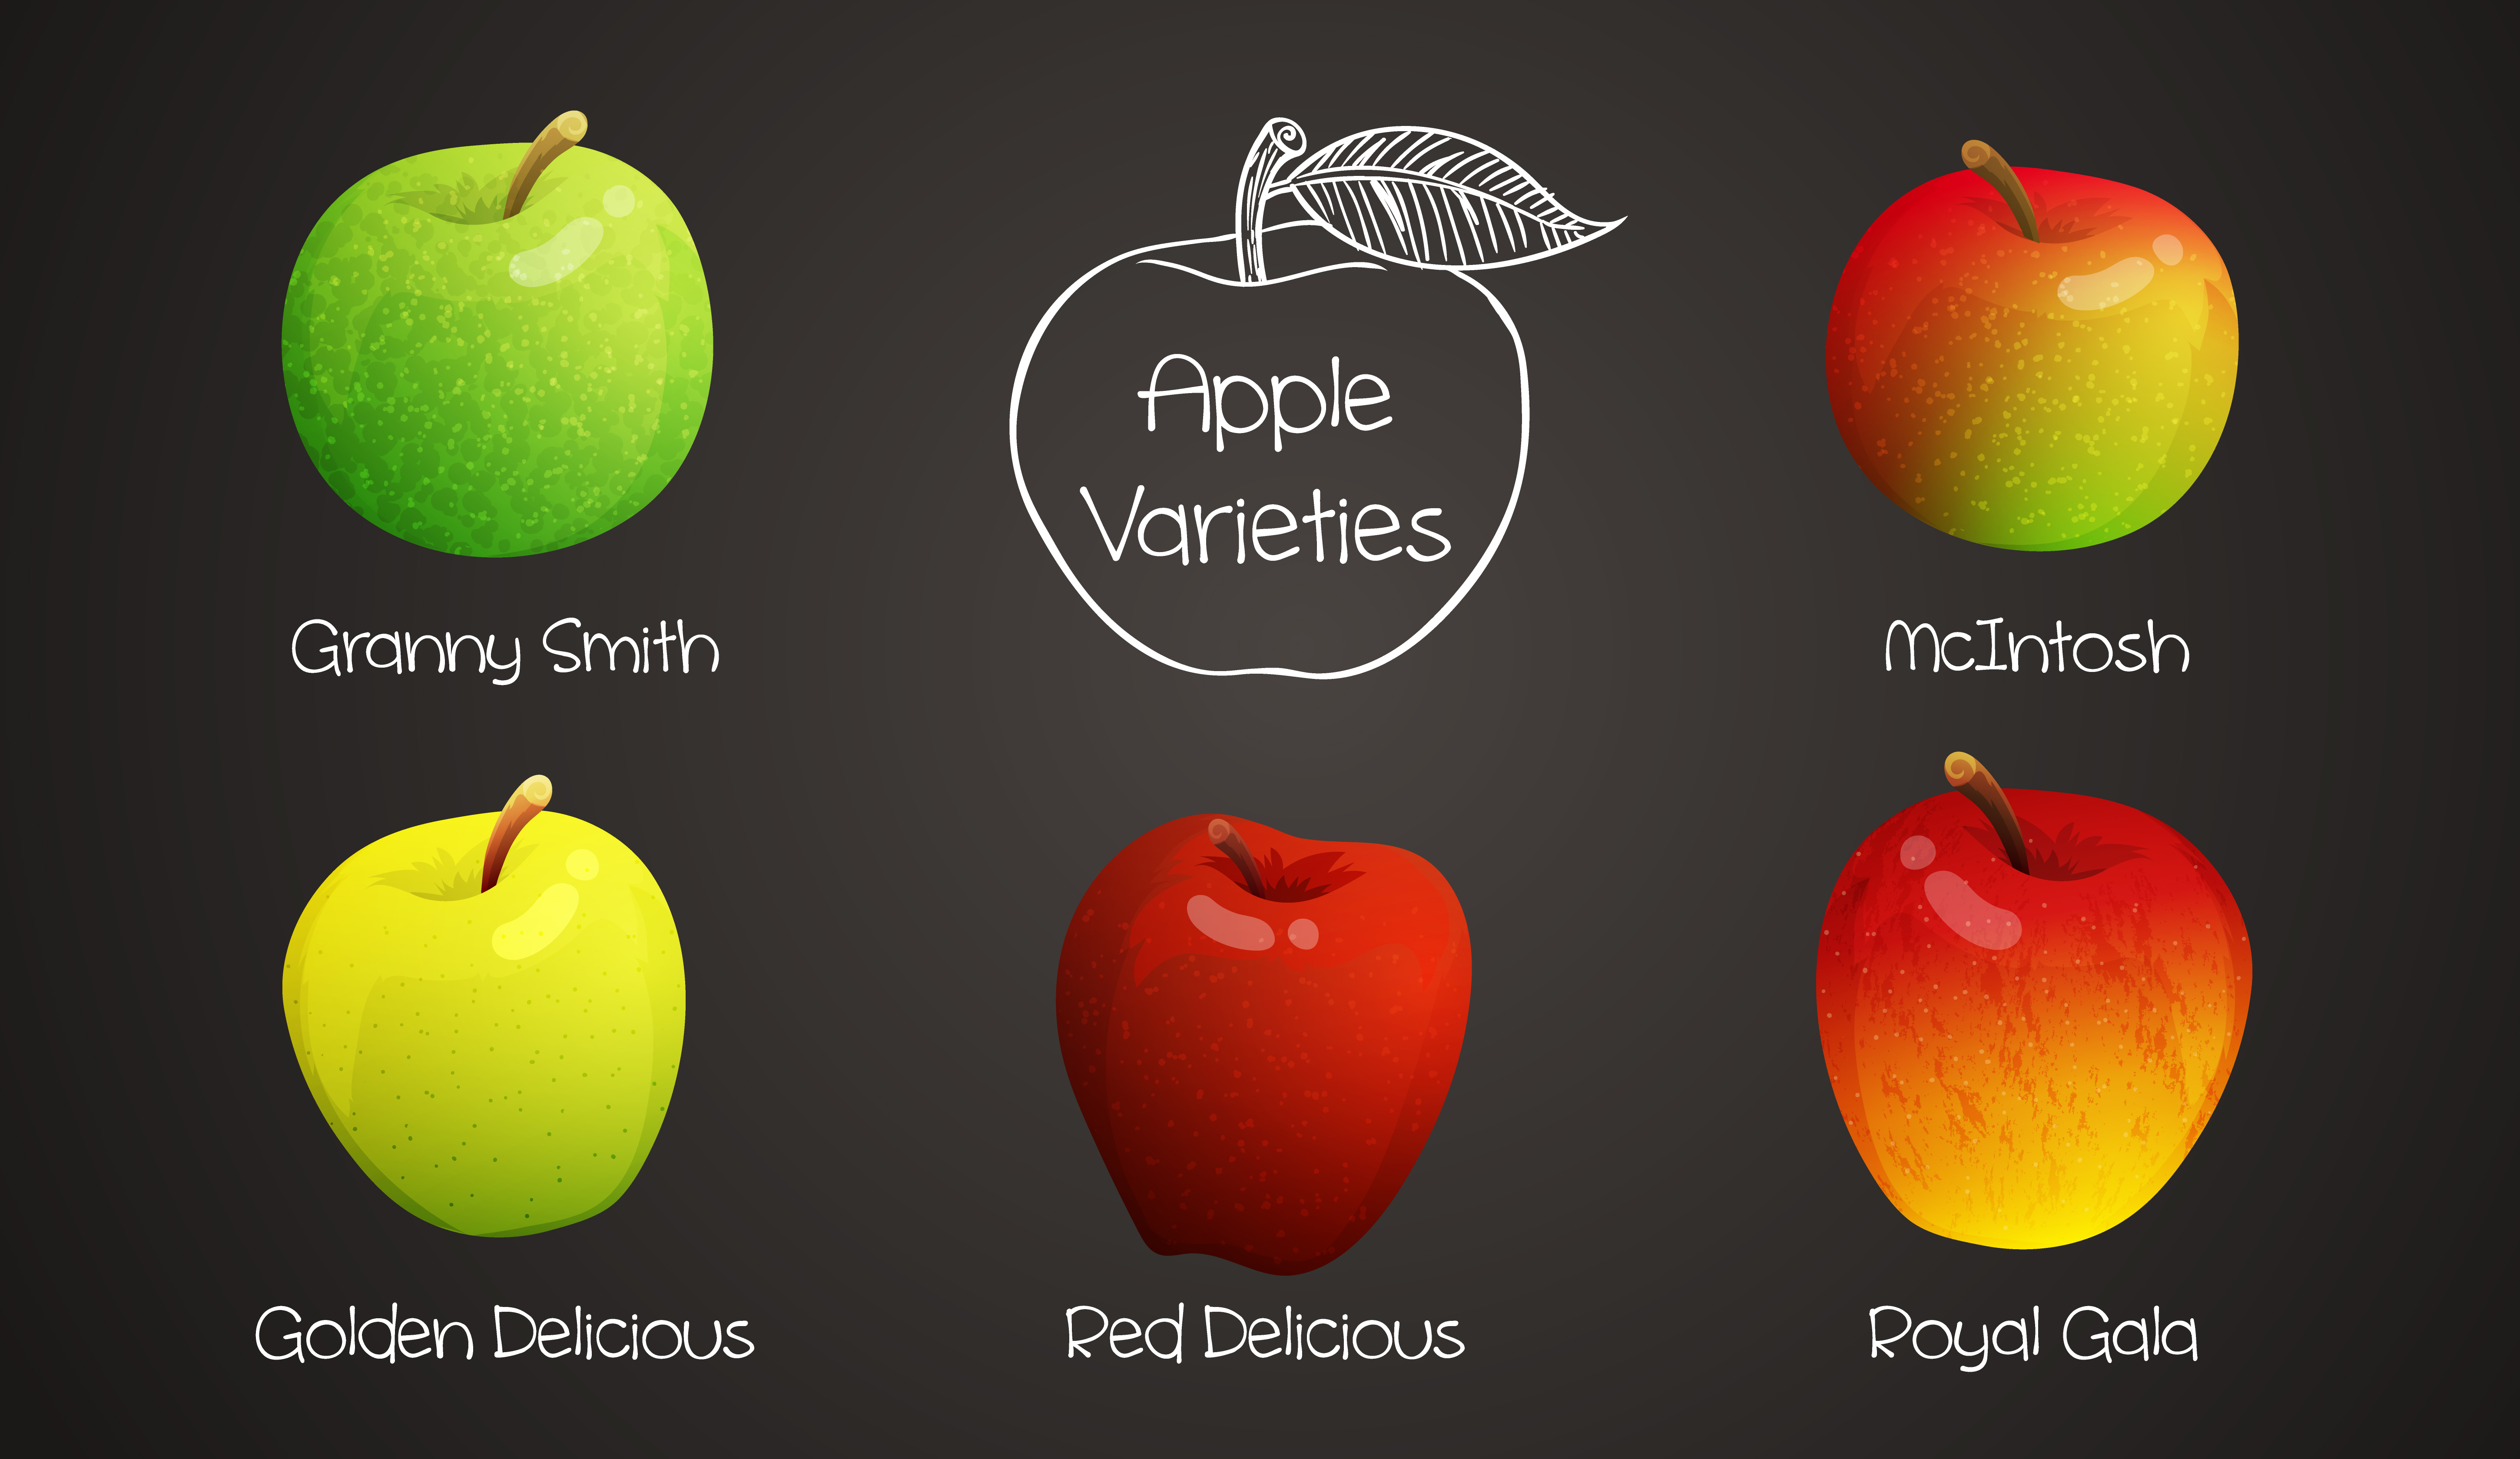 What is your favourite type of apple?